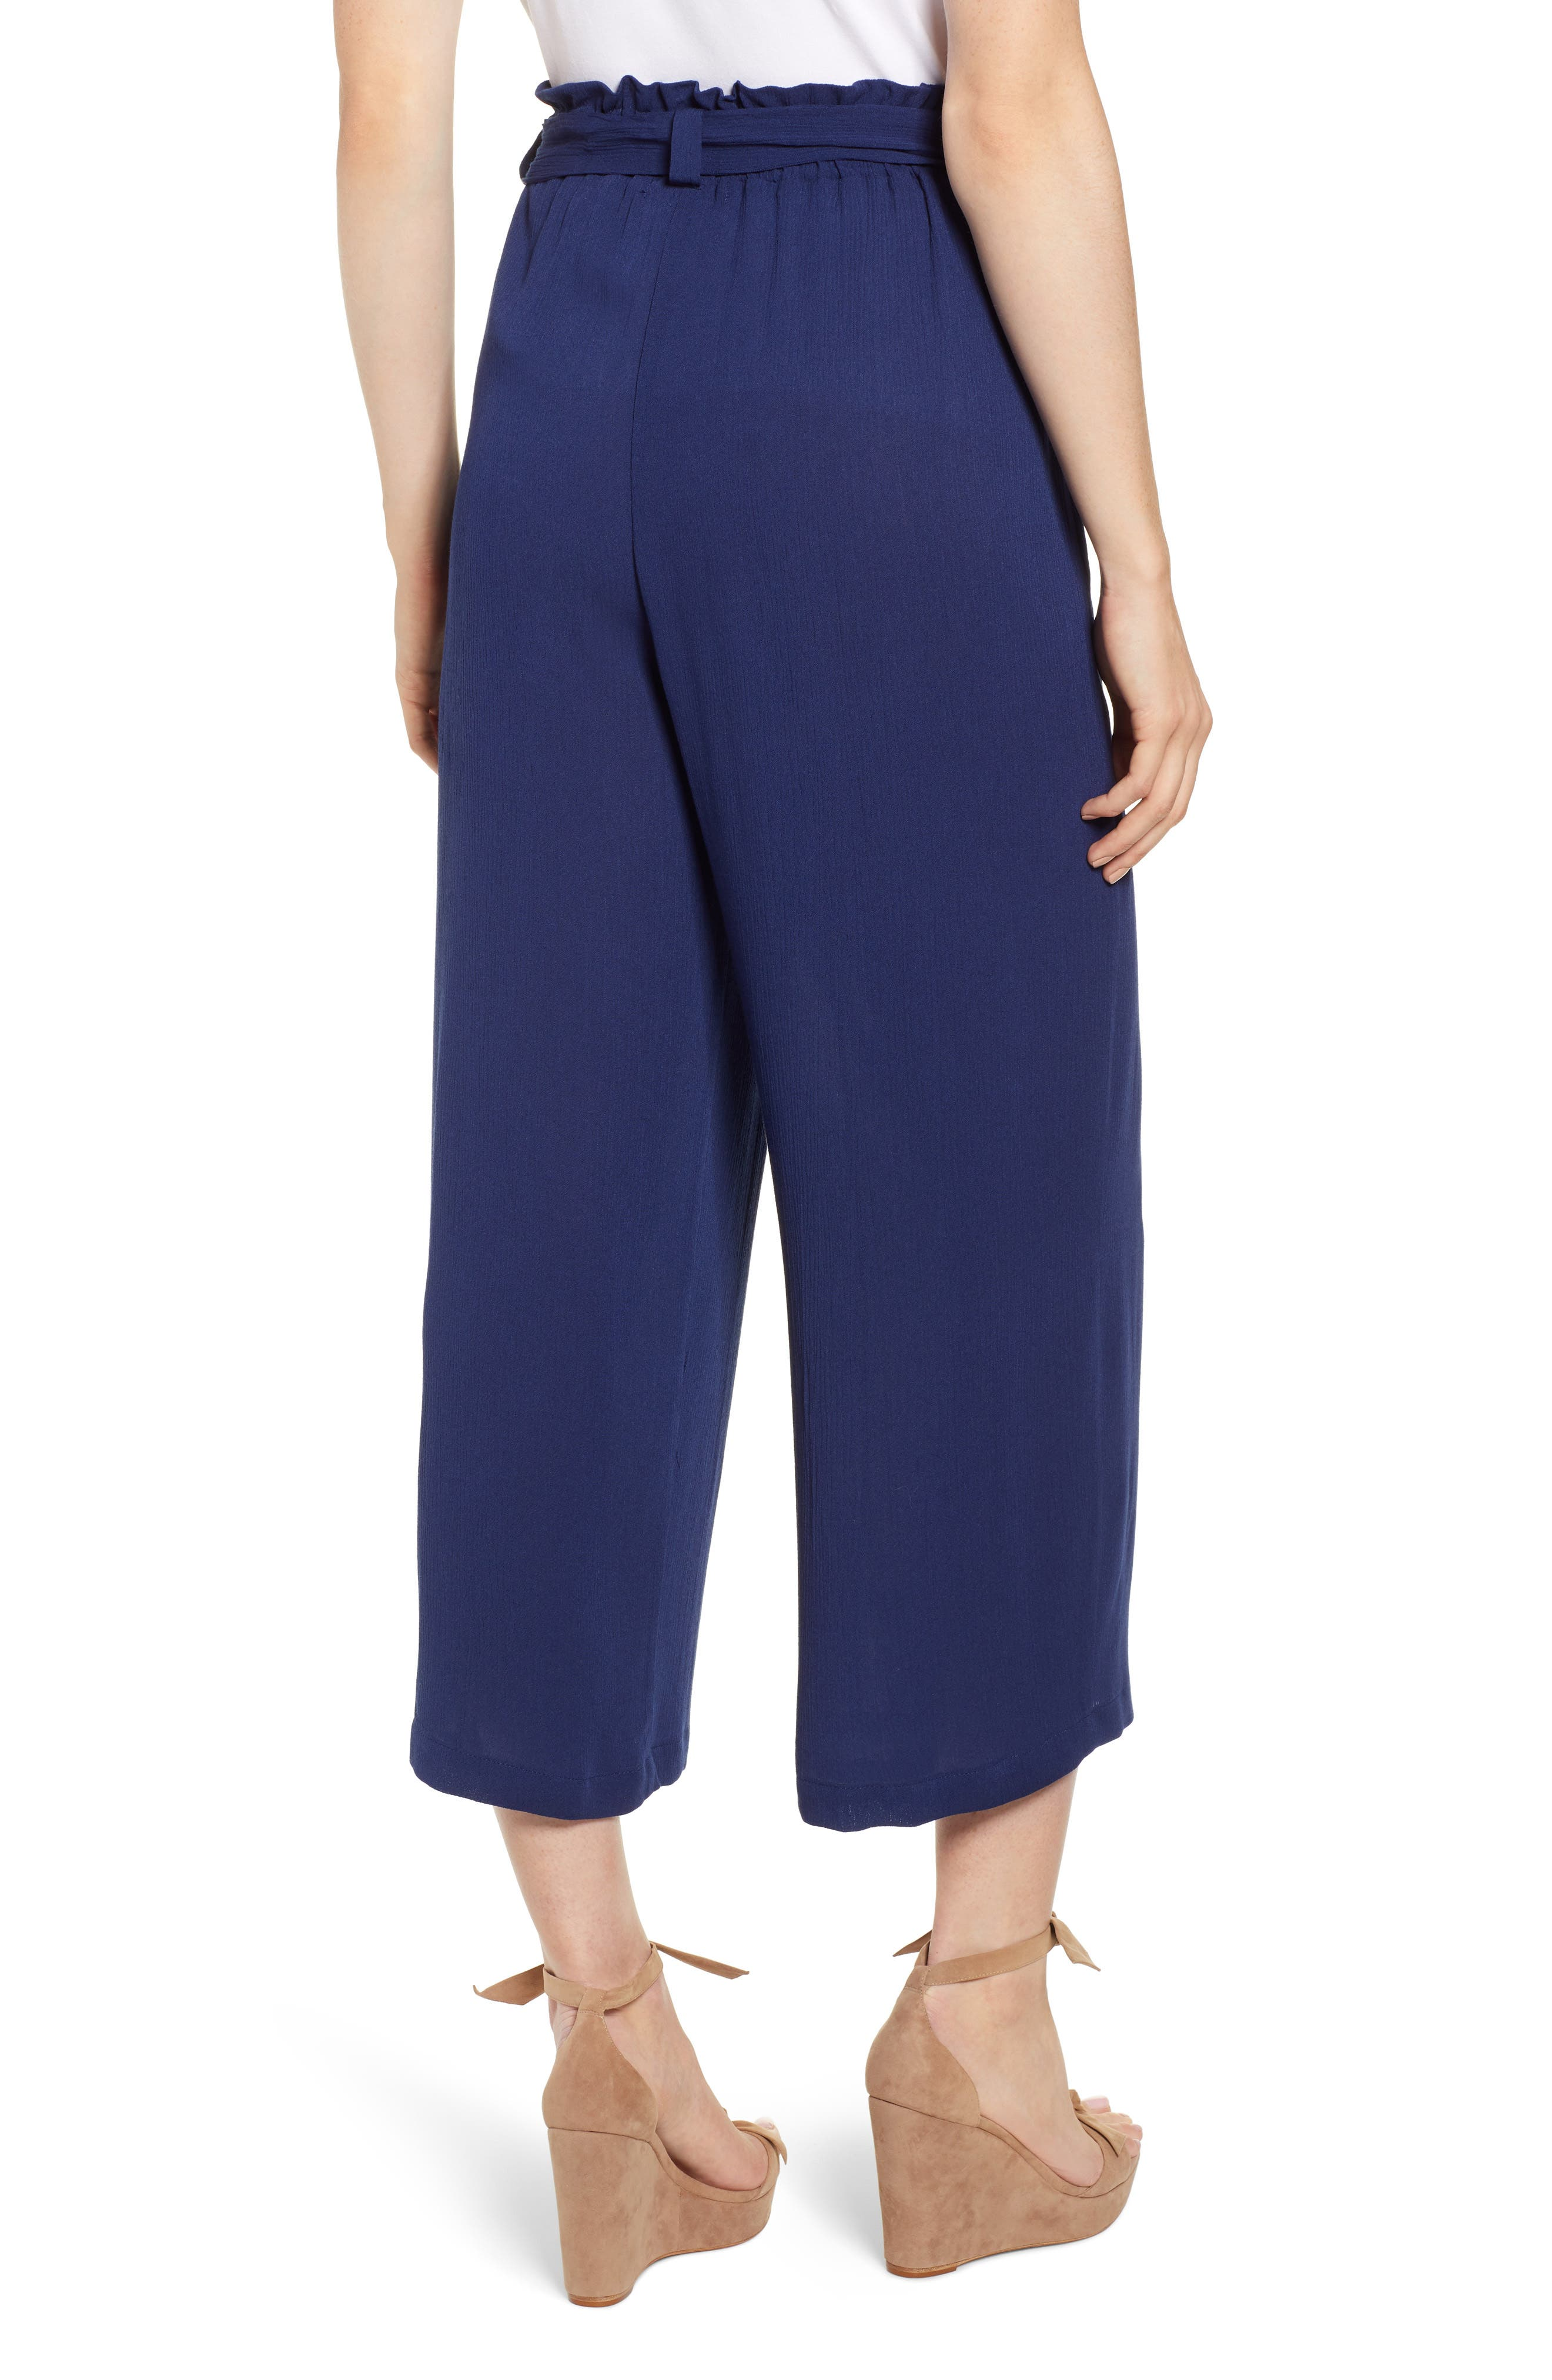 GIBSON,                             x Hi Sugarplum! Sedona Wide Leg Ankle Pants,                             Alternate thumbnail 2, color,                             CHAMBRAY SOLID